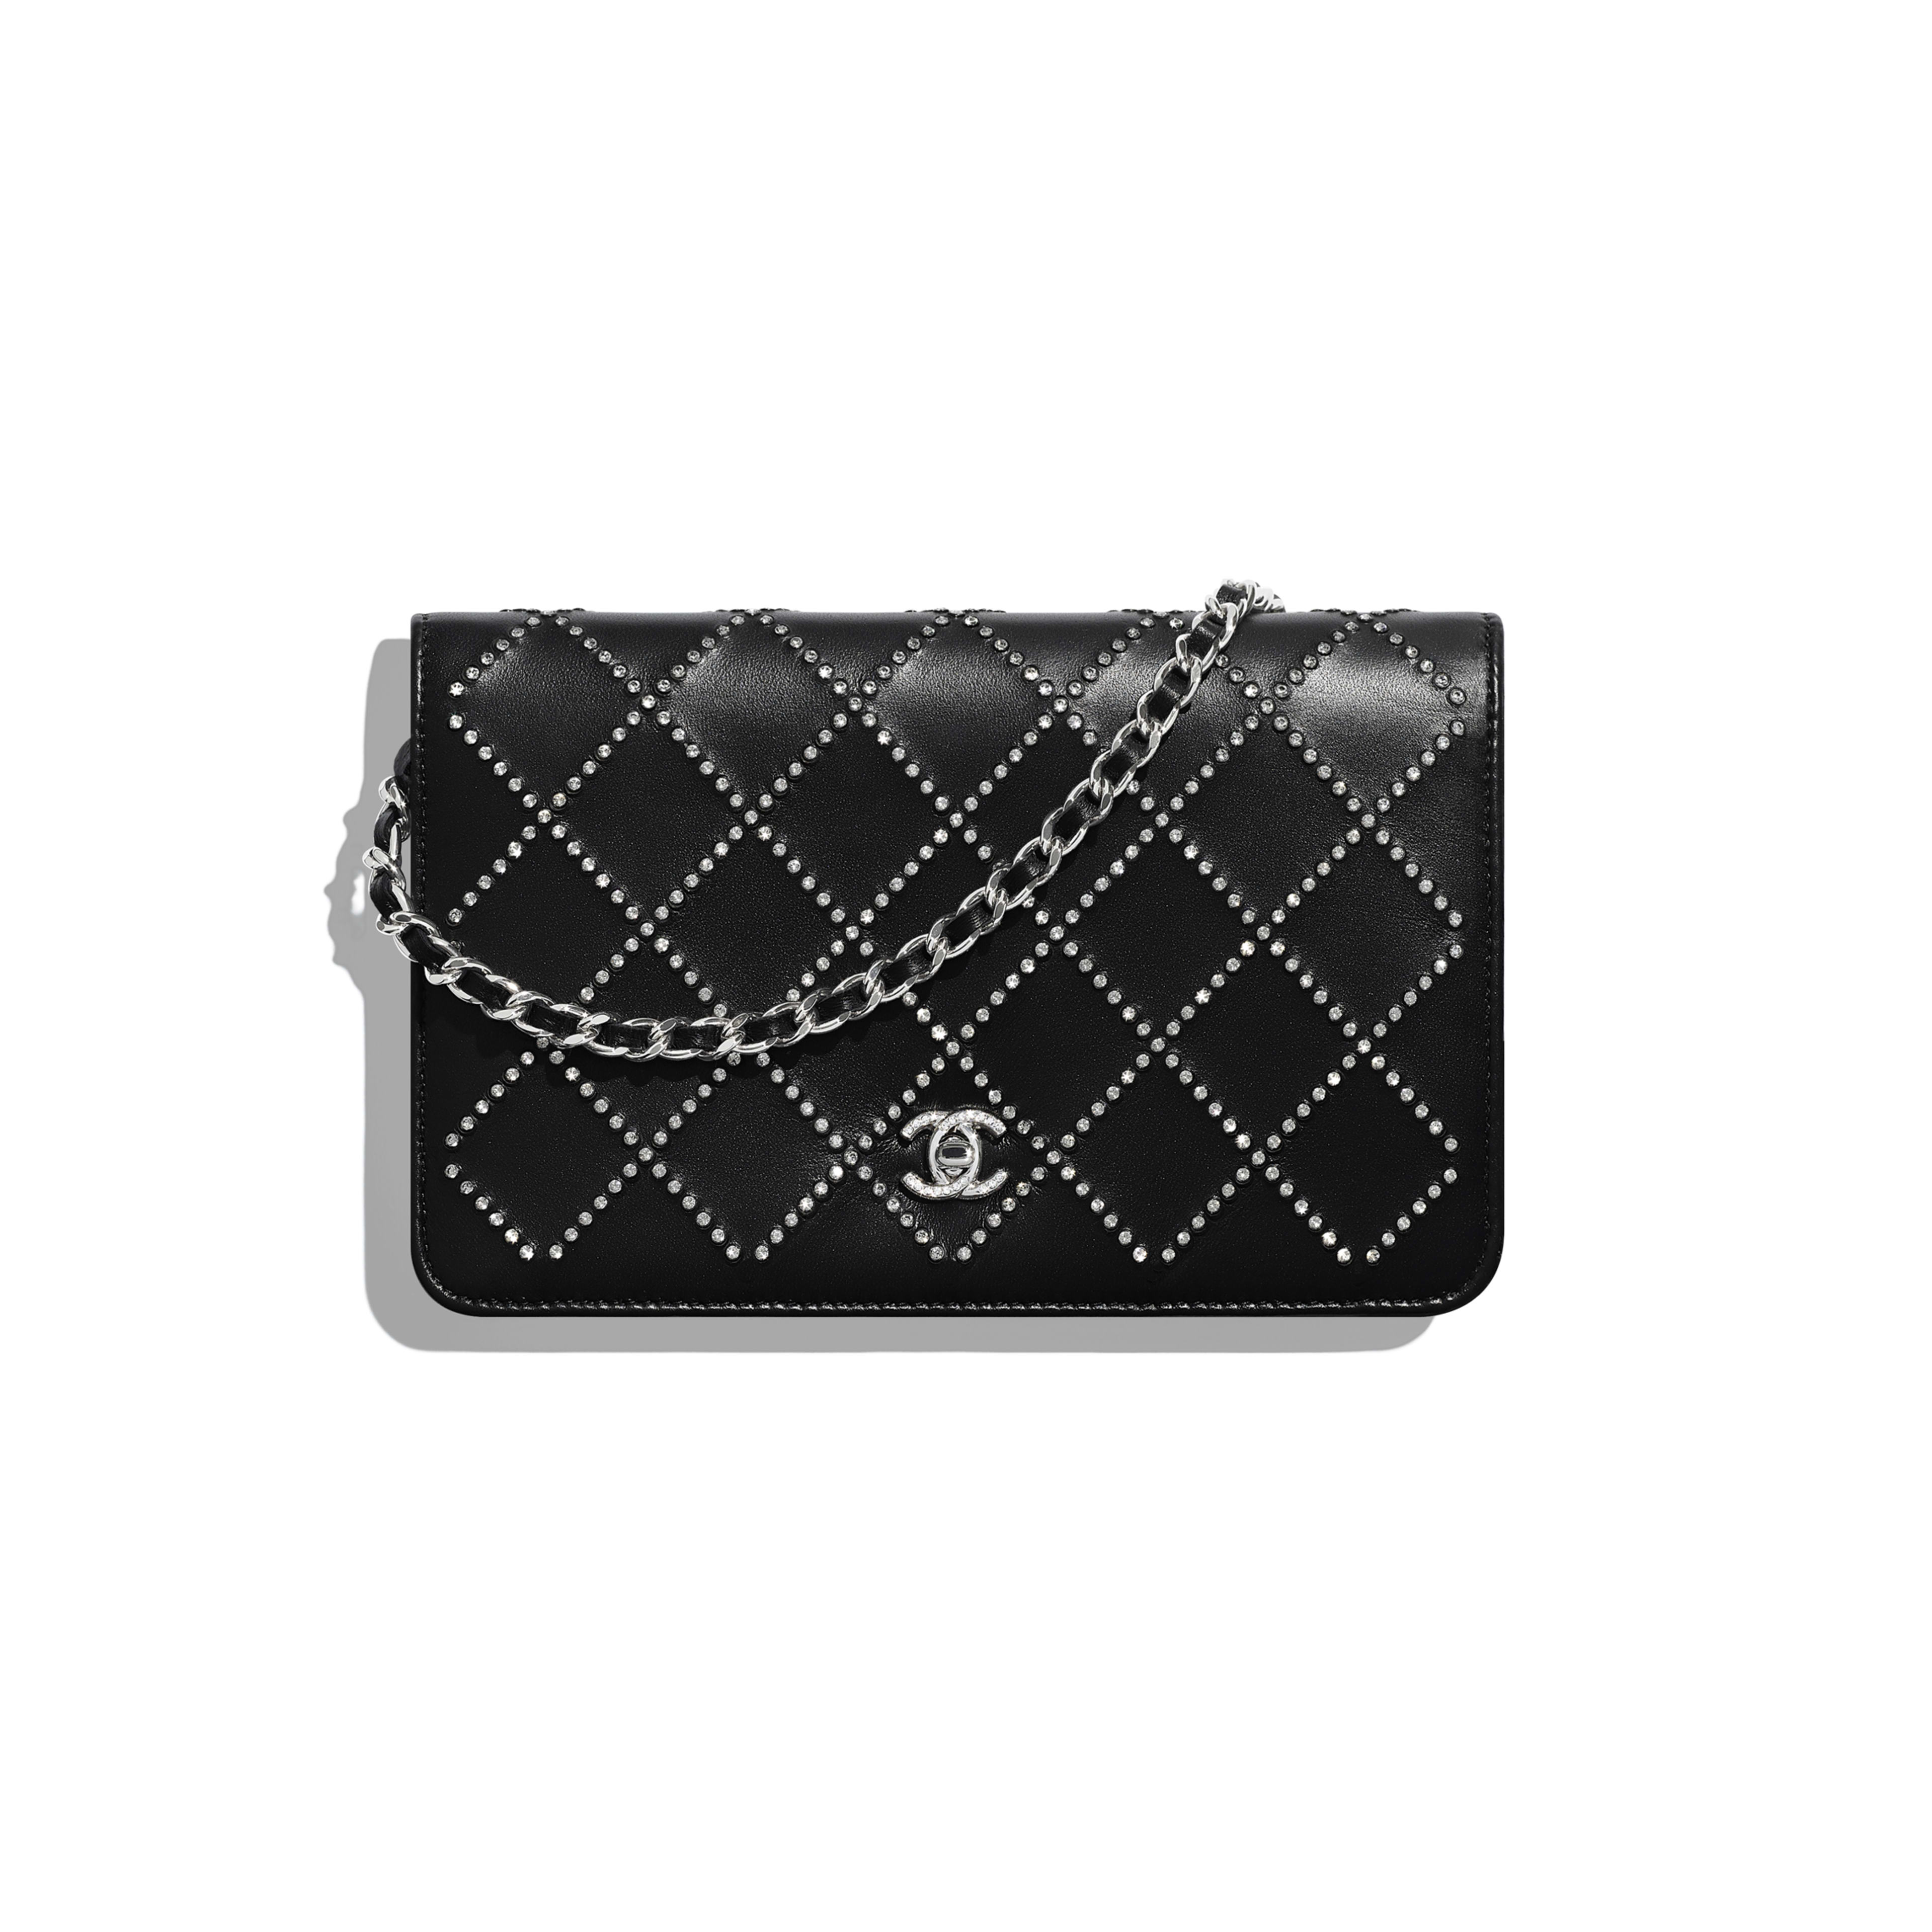 Wallet On Chain - Black - Iridescent Lambskin, Strass & Silver-Tone Metal - Default view - see full sized version